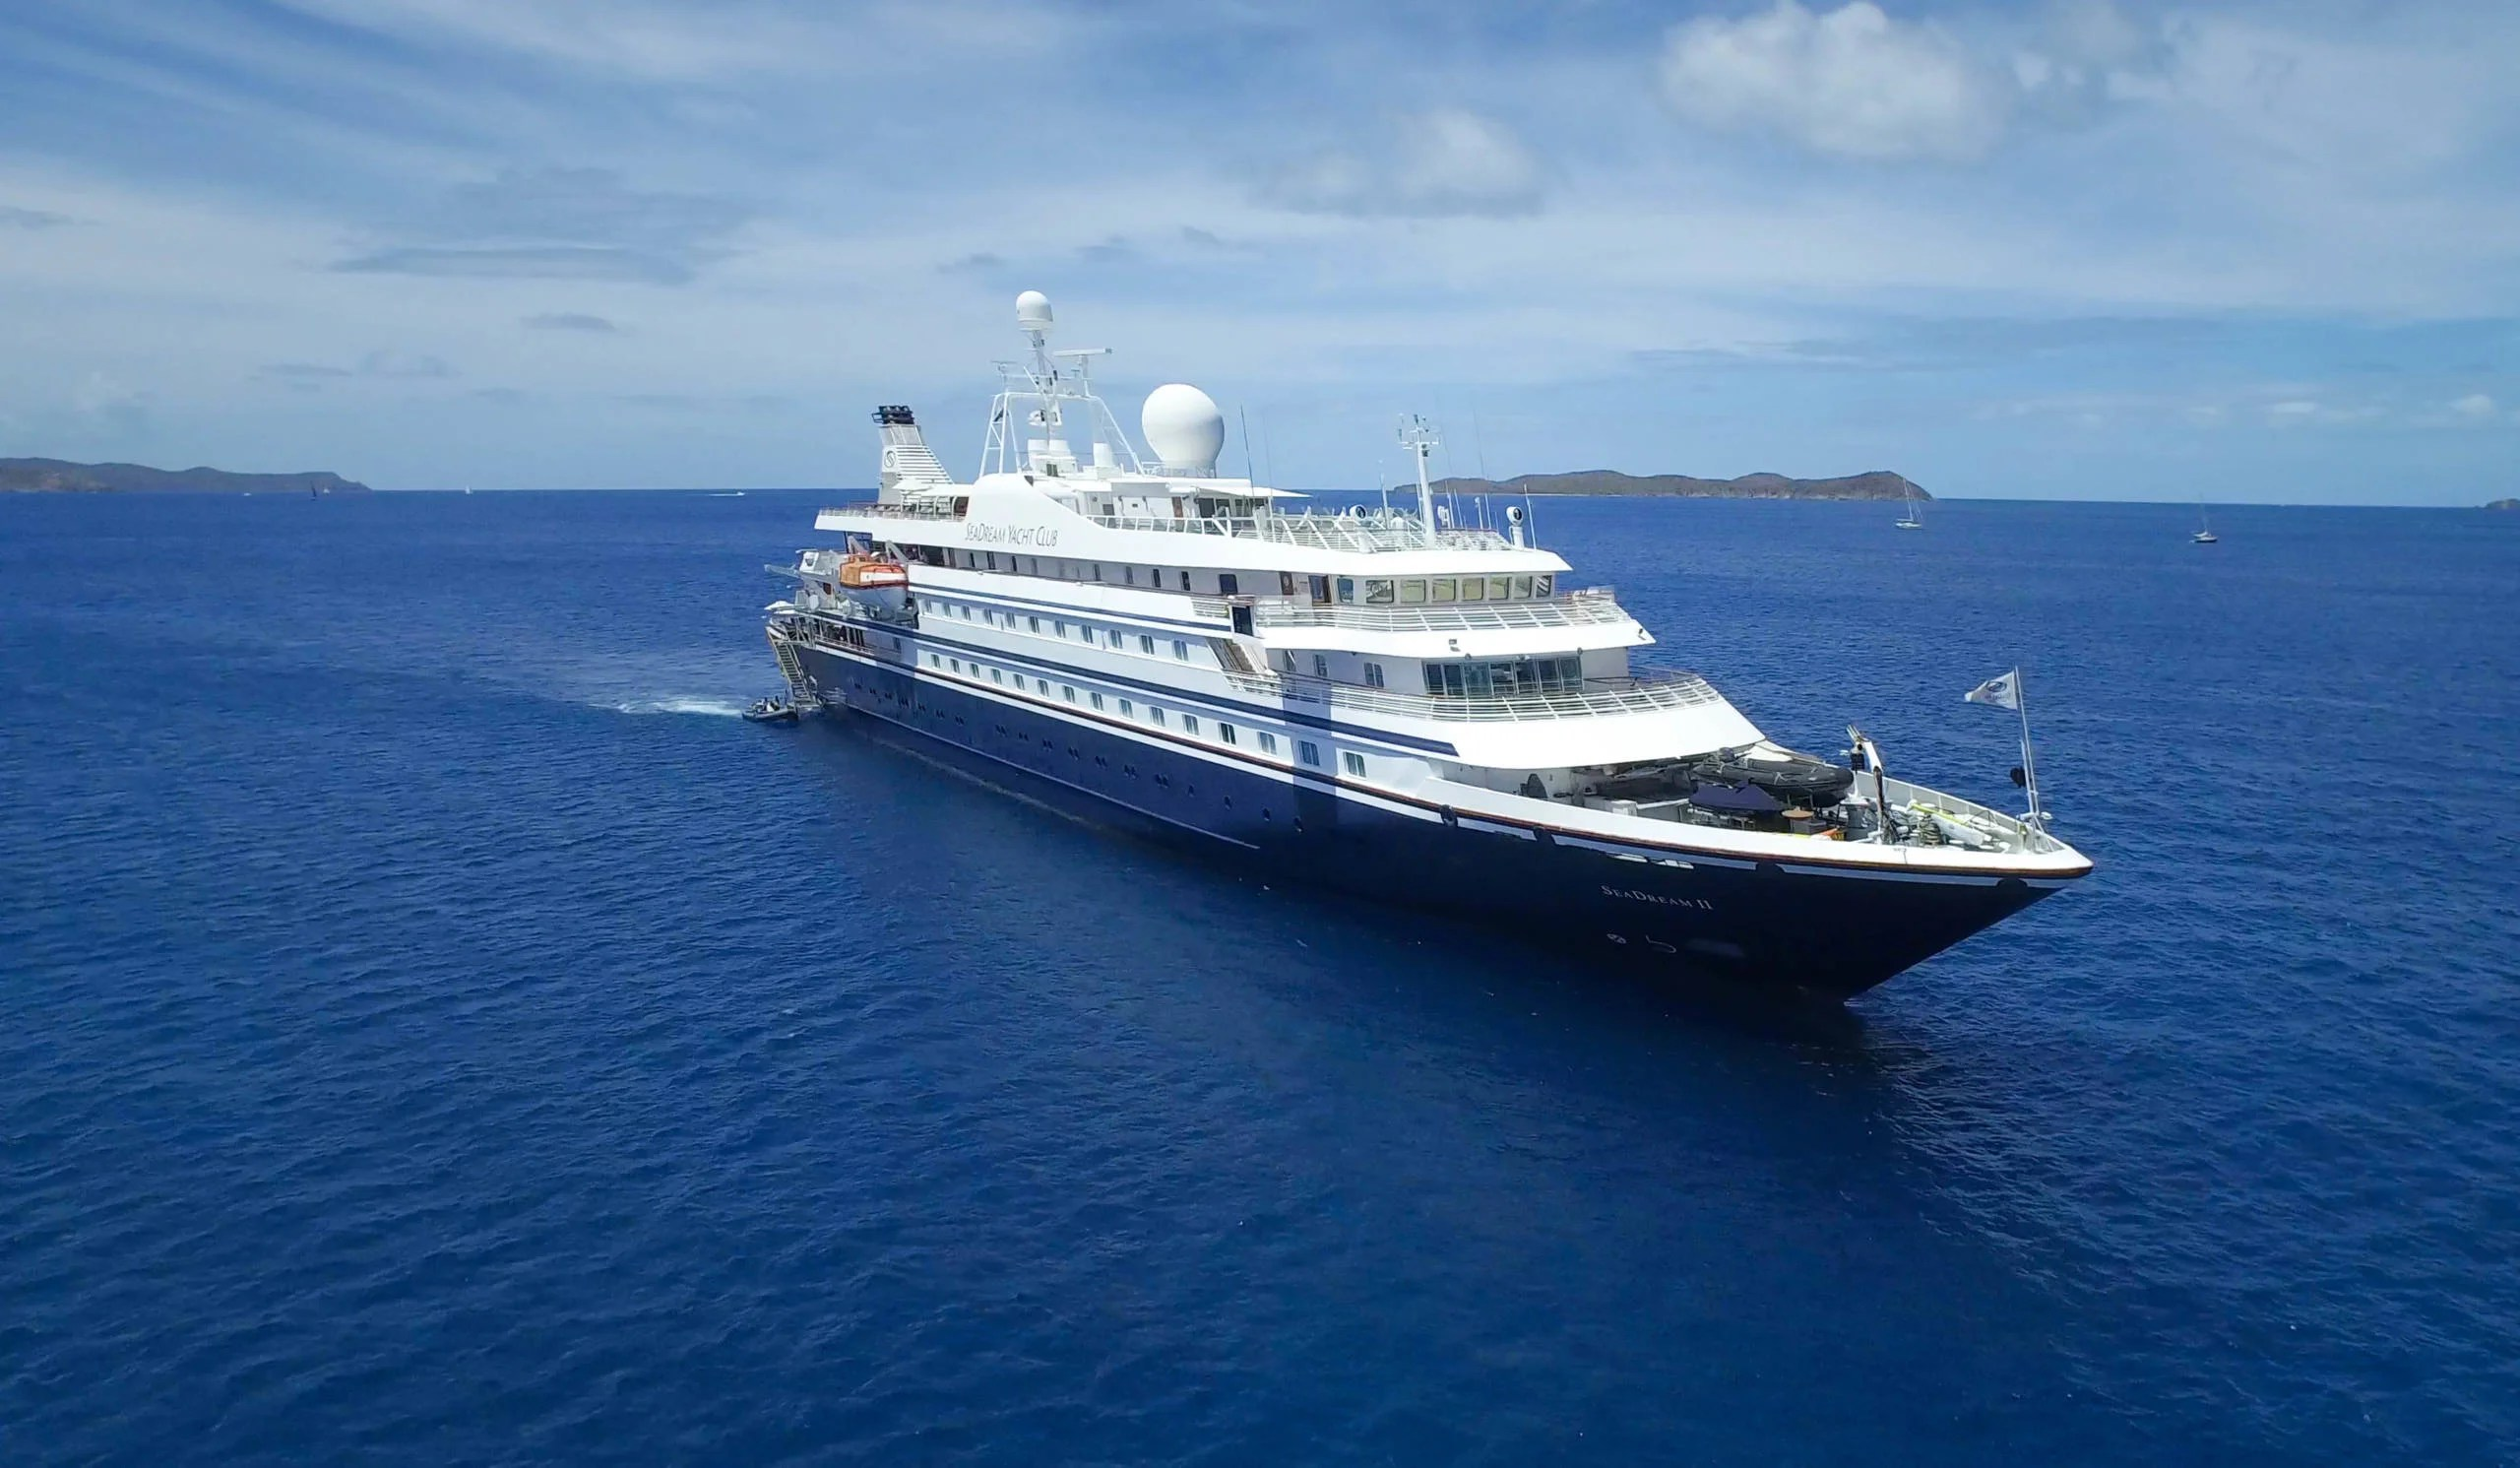 It's official: Cruising will resume in the Caribbean in just 7 weeks